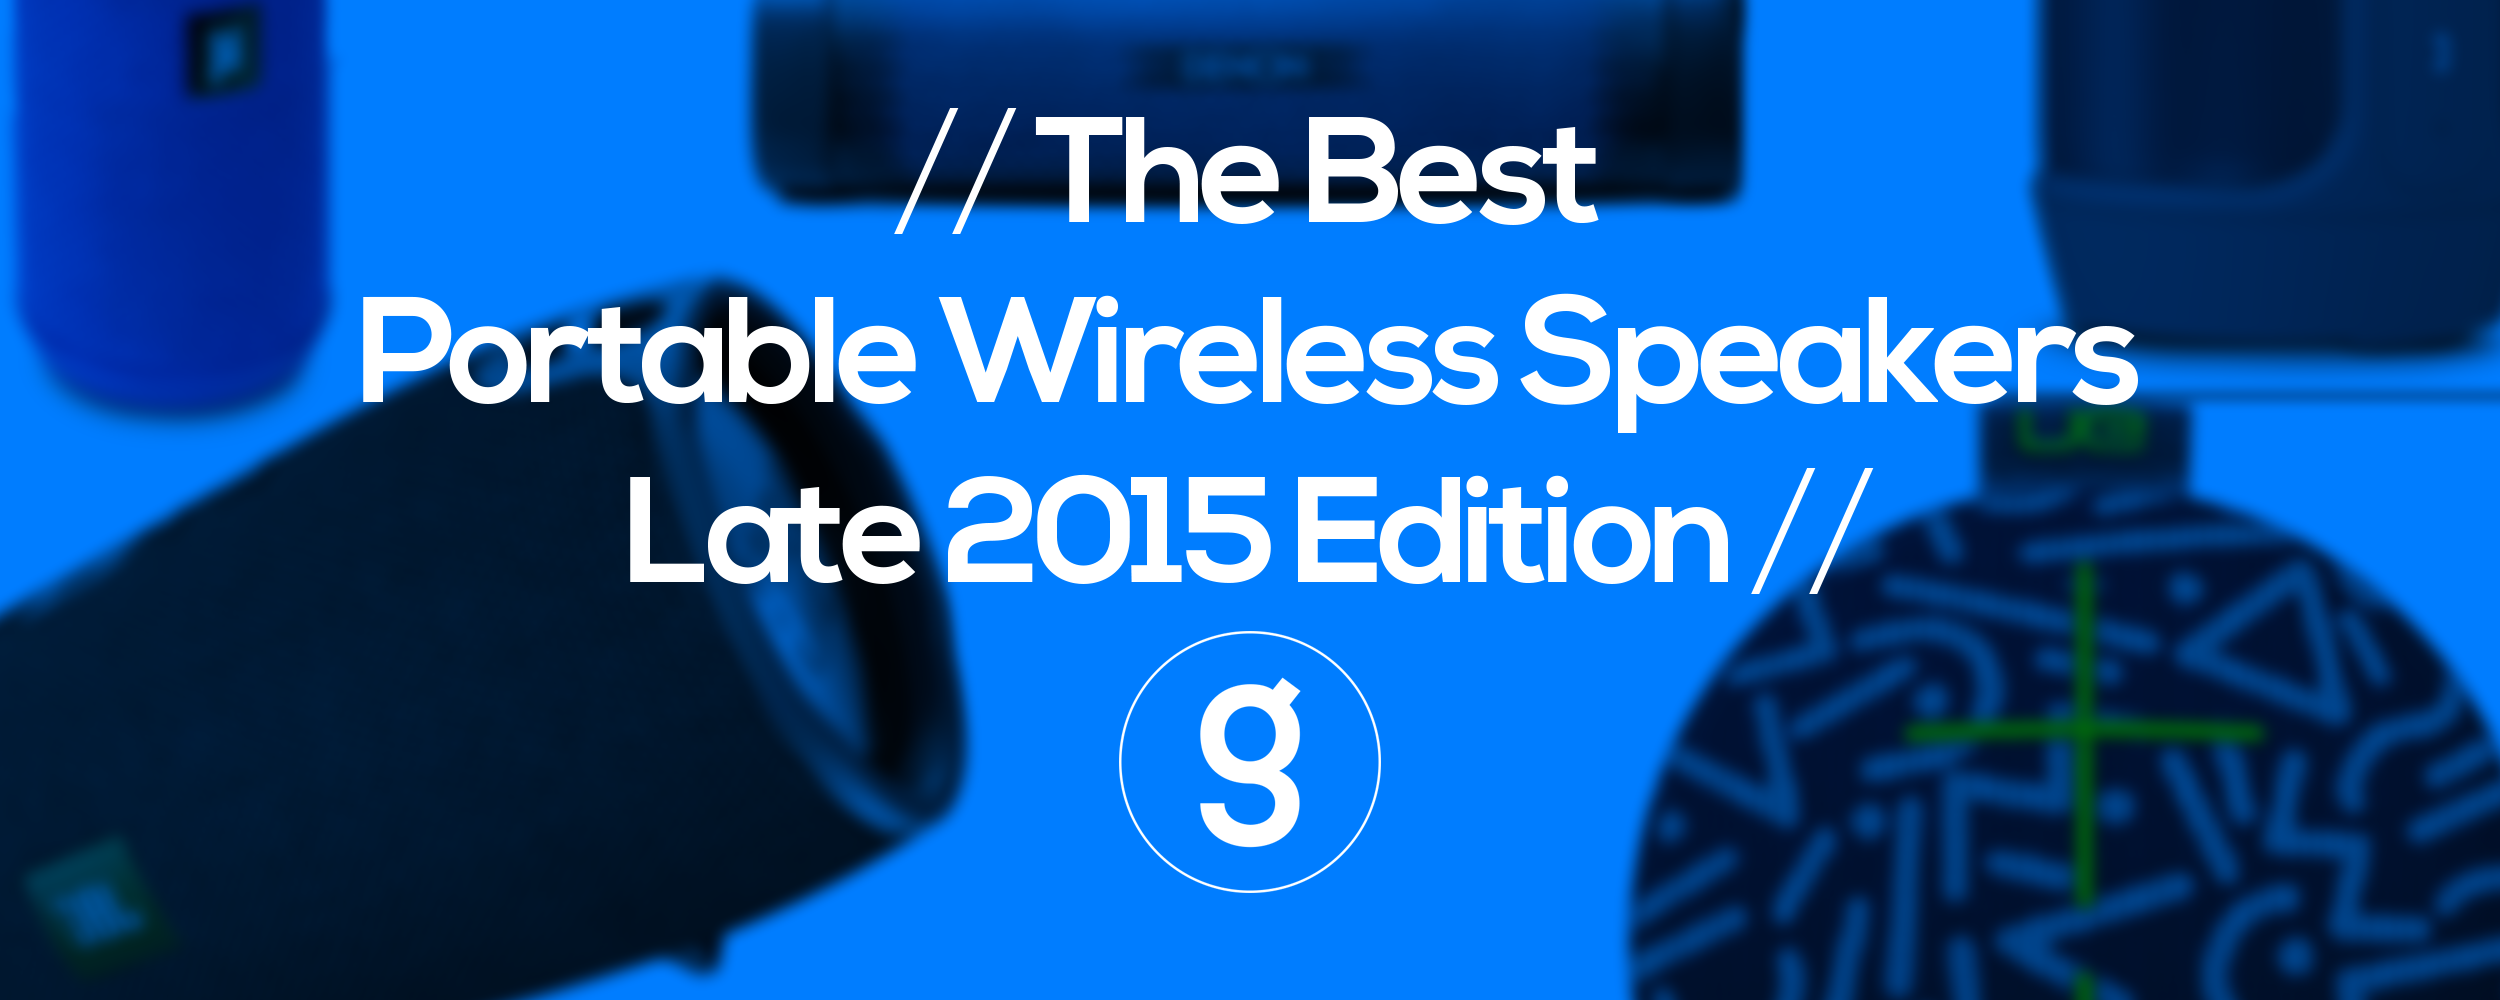 the-best-portable-wireless-speakers-of-2015.png